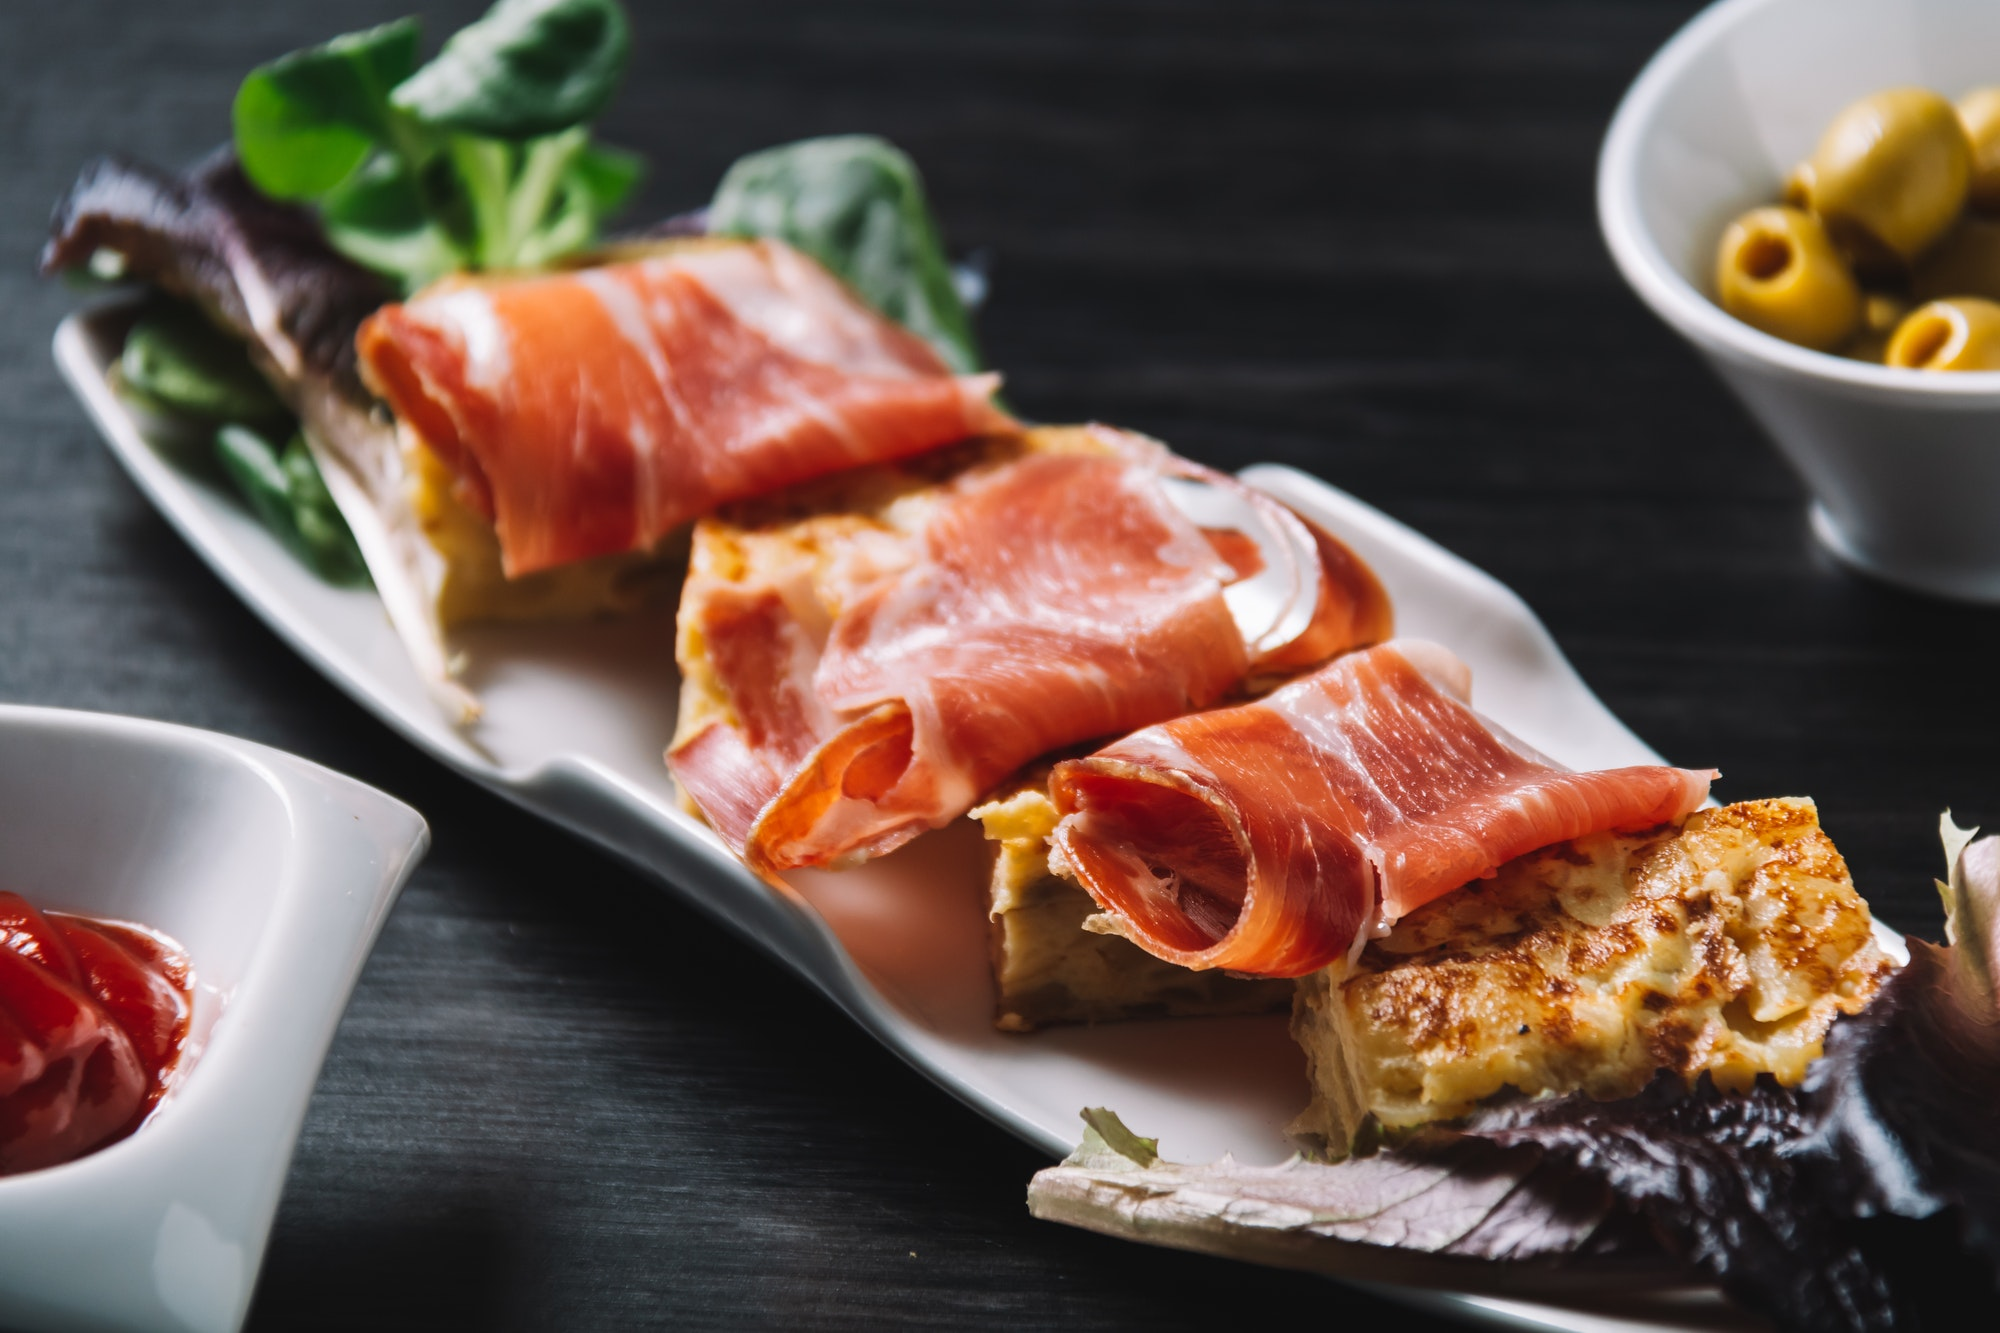 delicious Spanish potato omelette top with serrano ham, and olives